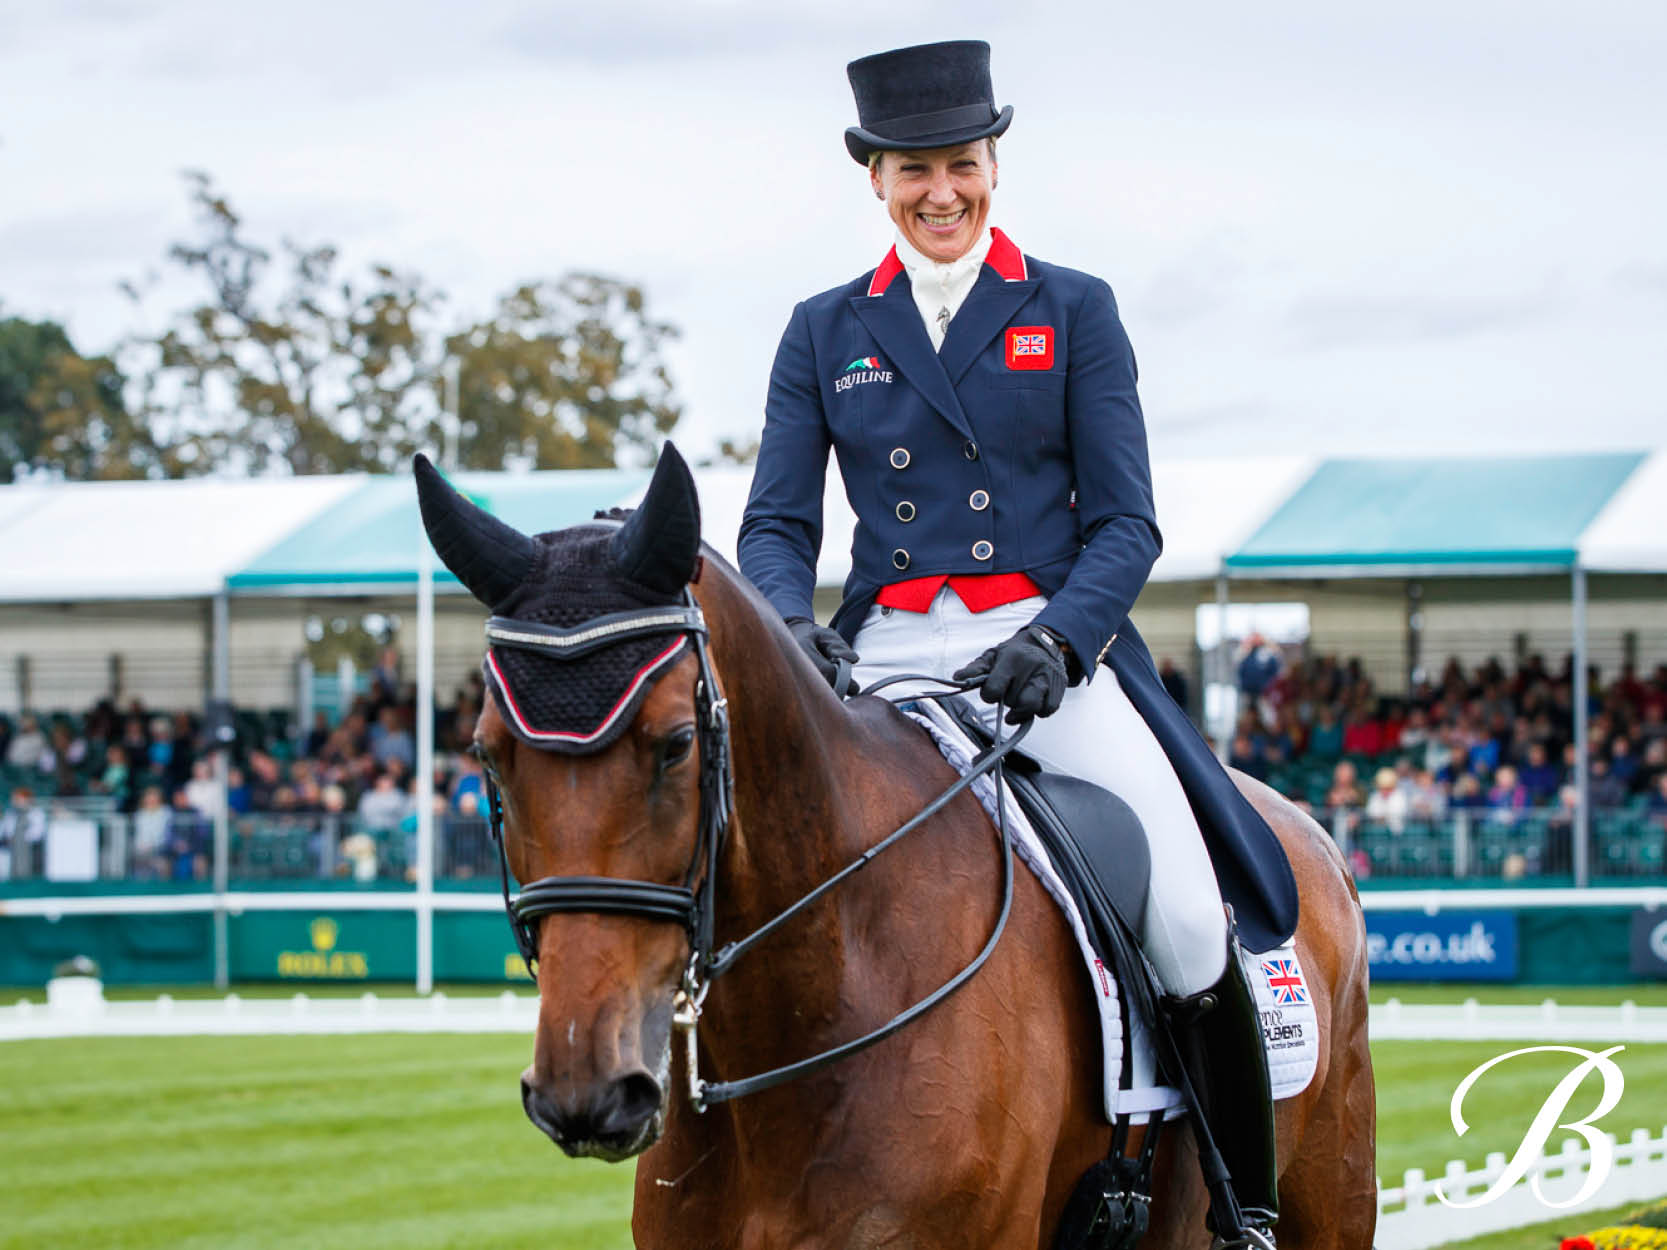 Meet Sarah Bullimore, 5* British Eventer and big fan of Bates Saddles!